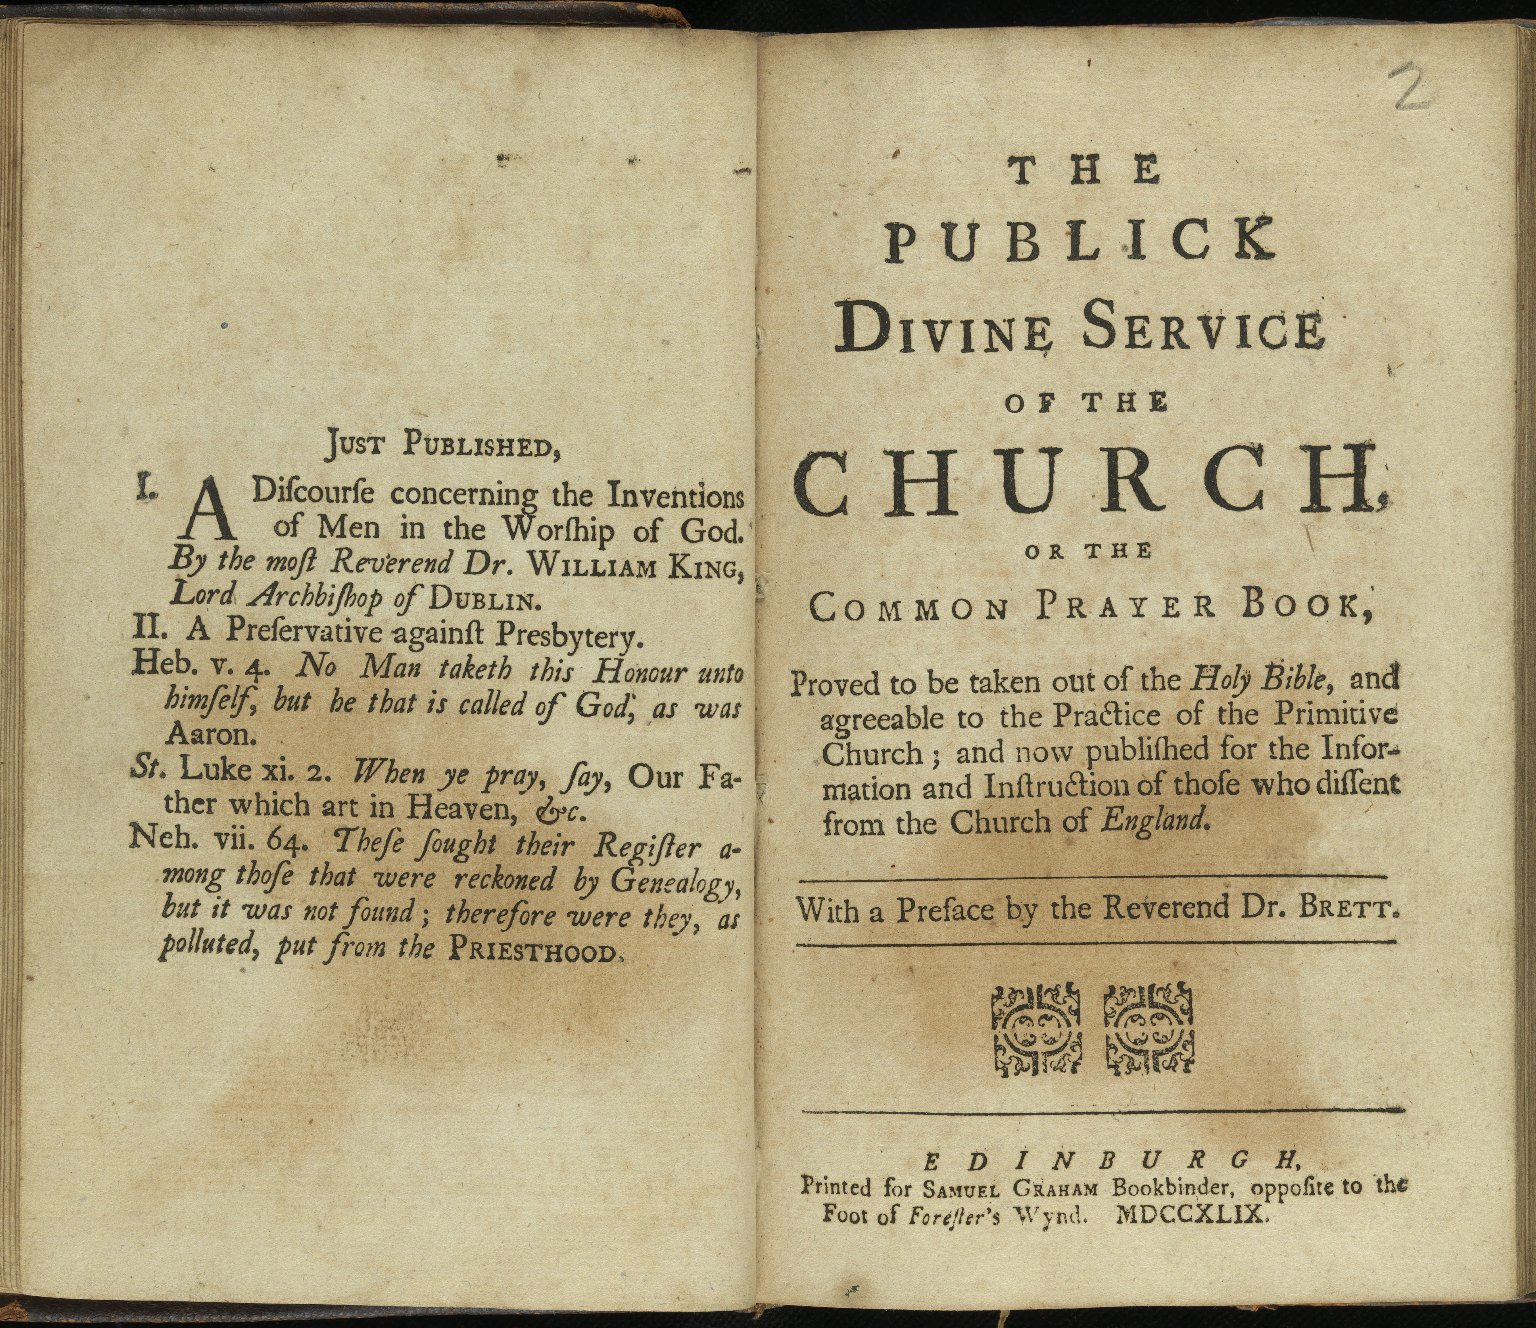 The publick divine service of the church, or, The Common prayer book, Pamphlet 2, title page